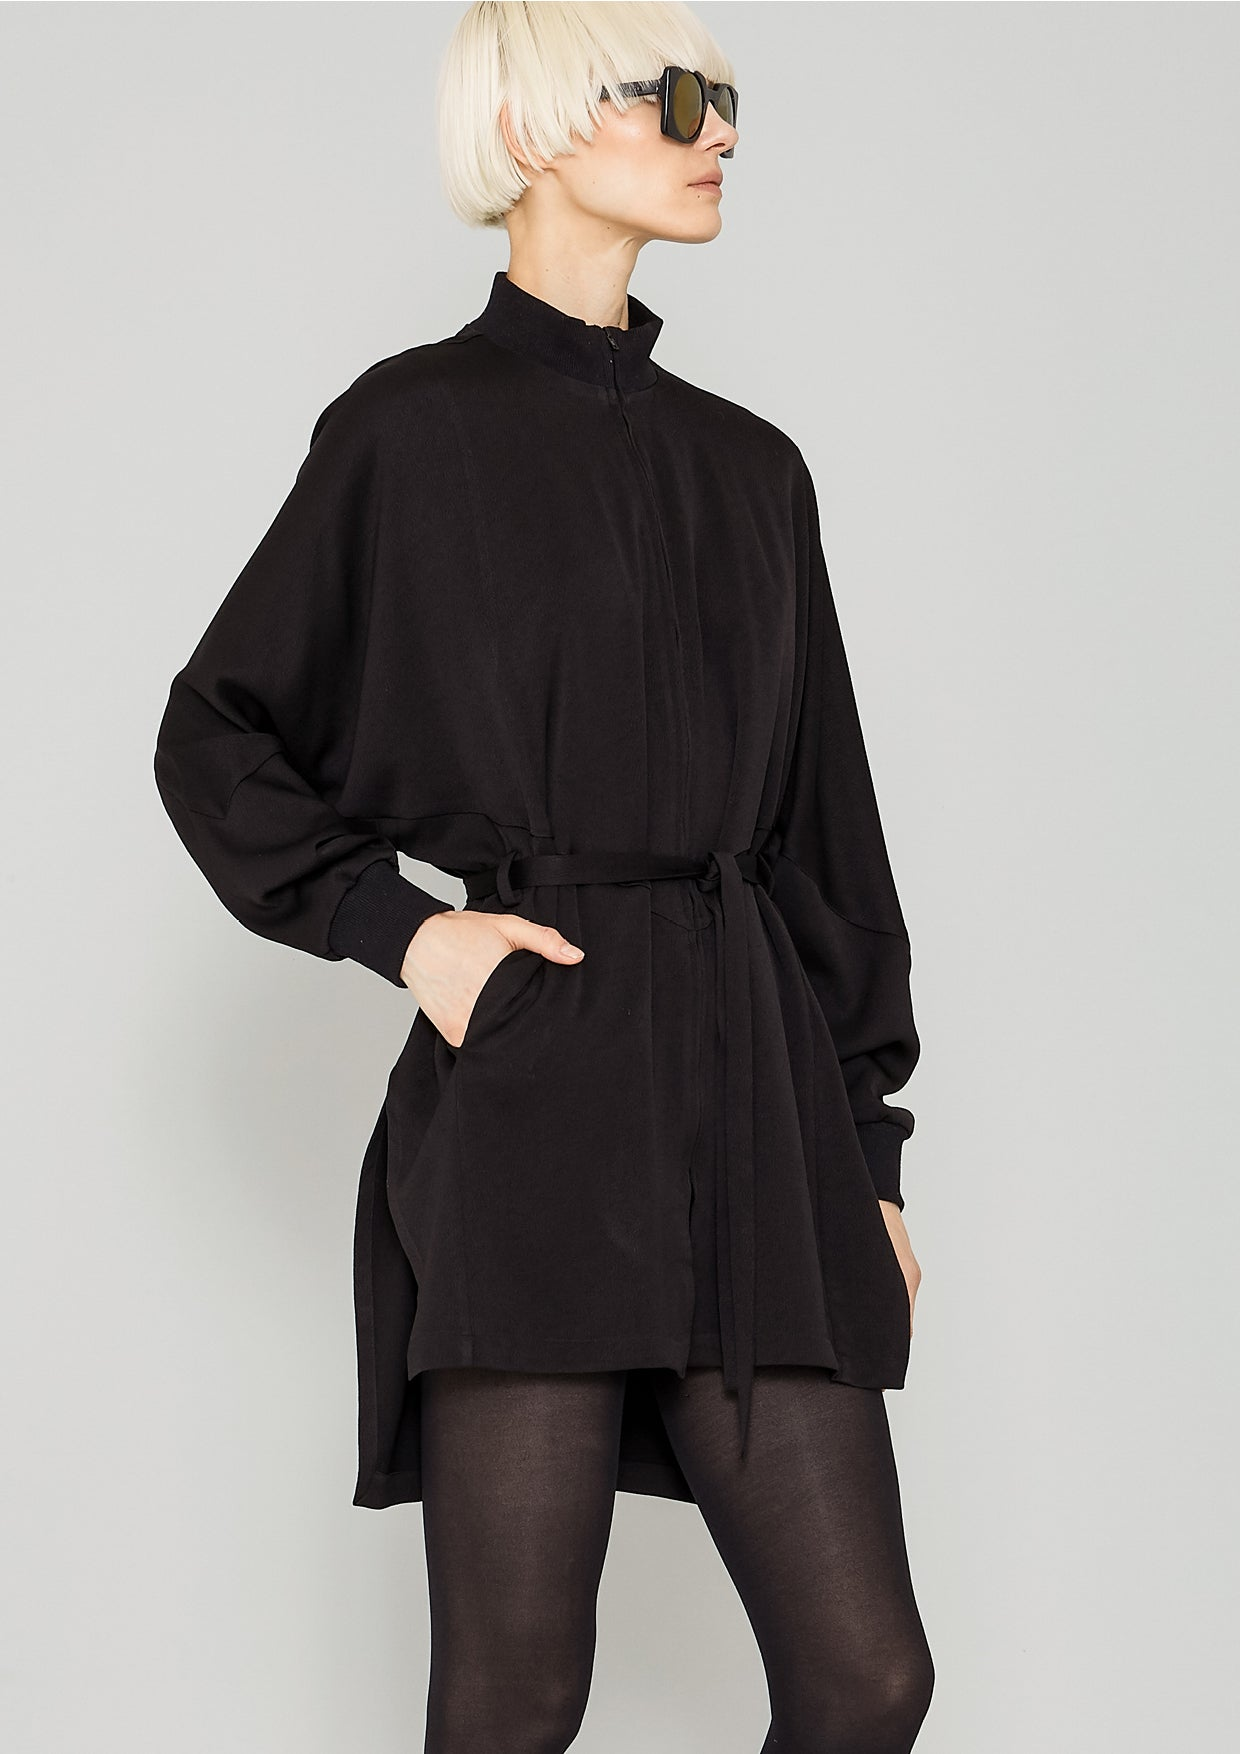 76e1f93836 JACKET DRESS - HEAVY DRAPING black